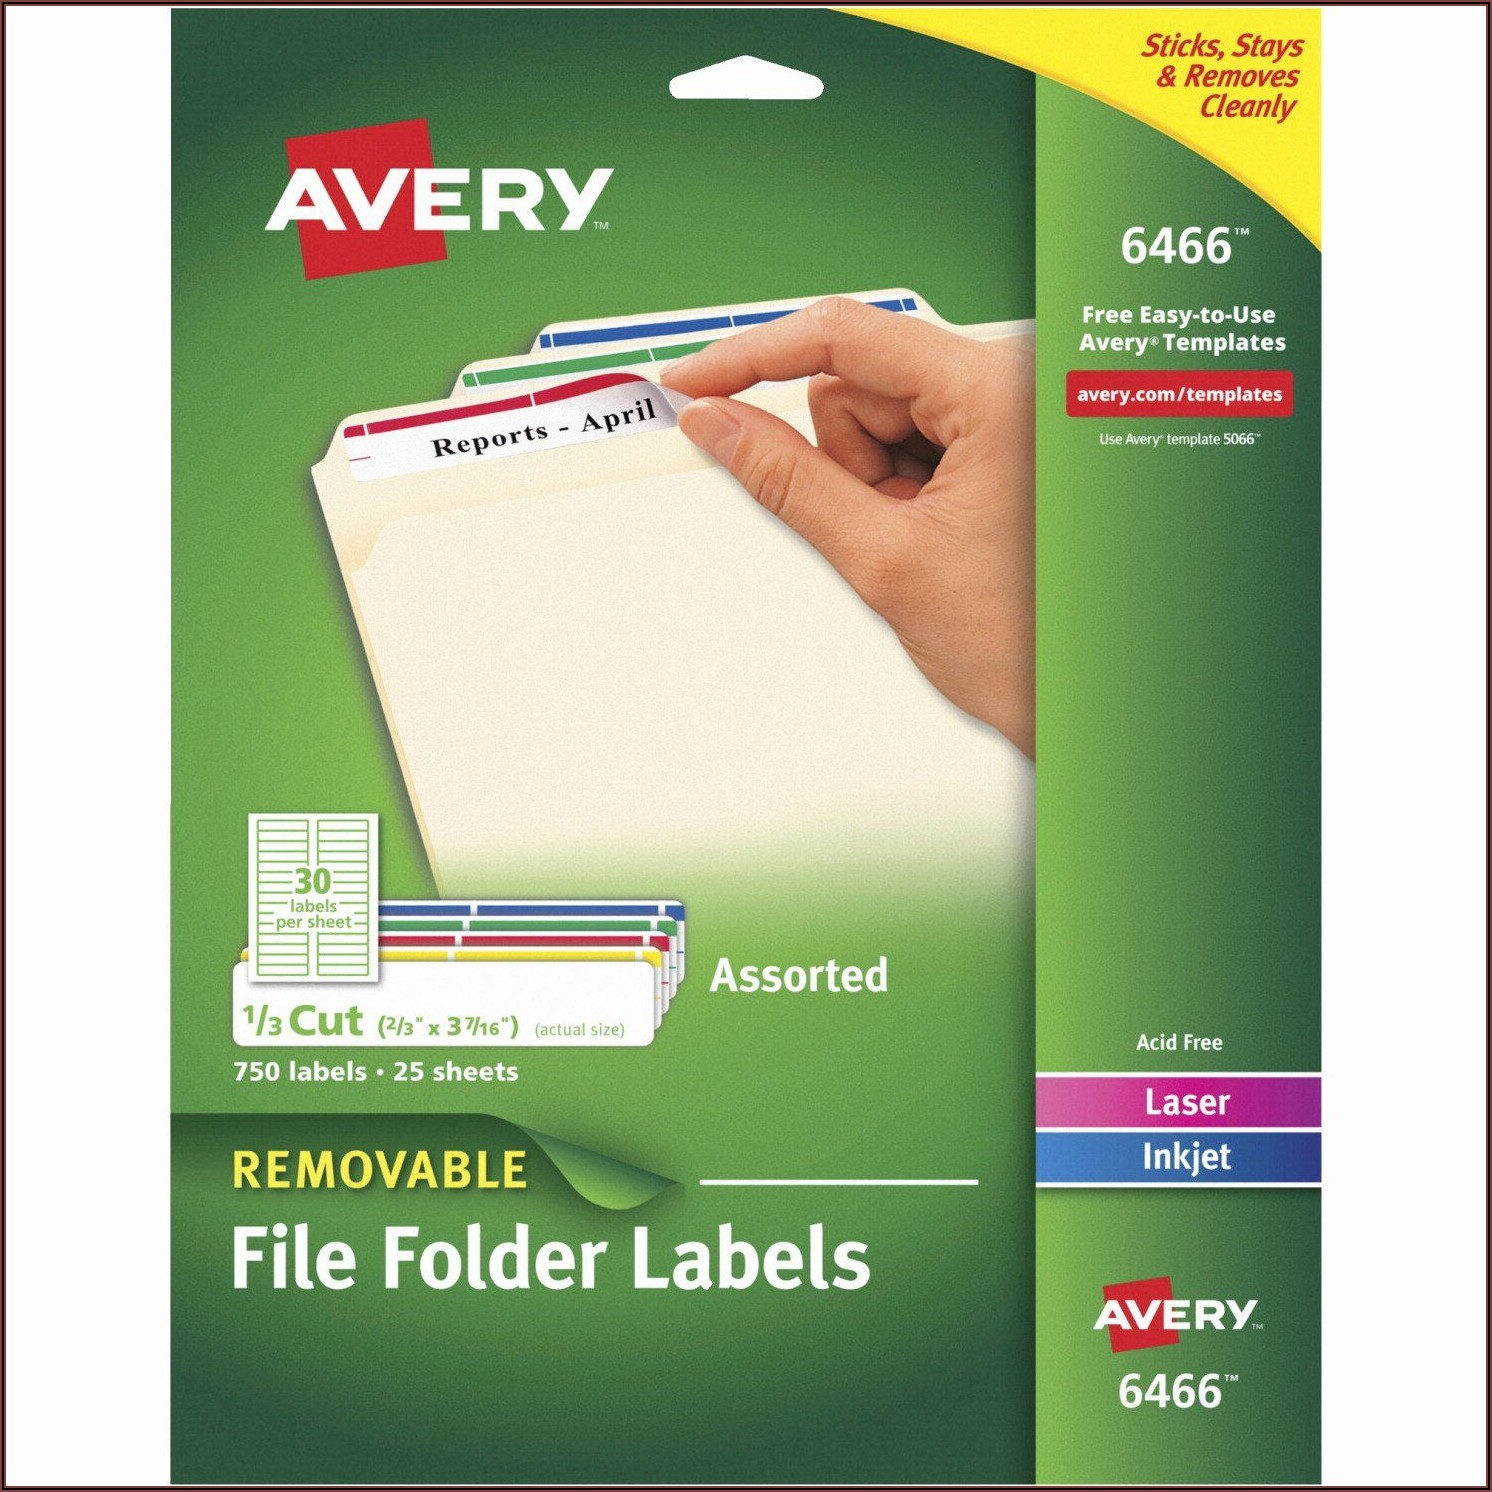 Avery File Label Template